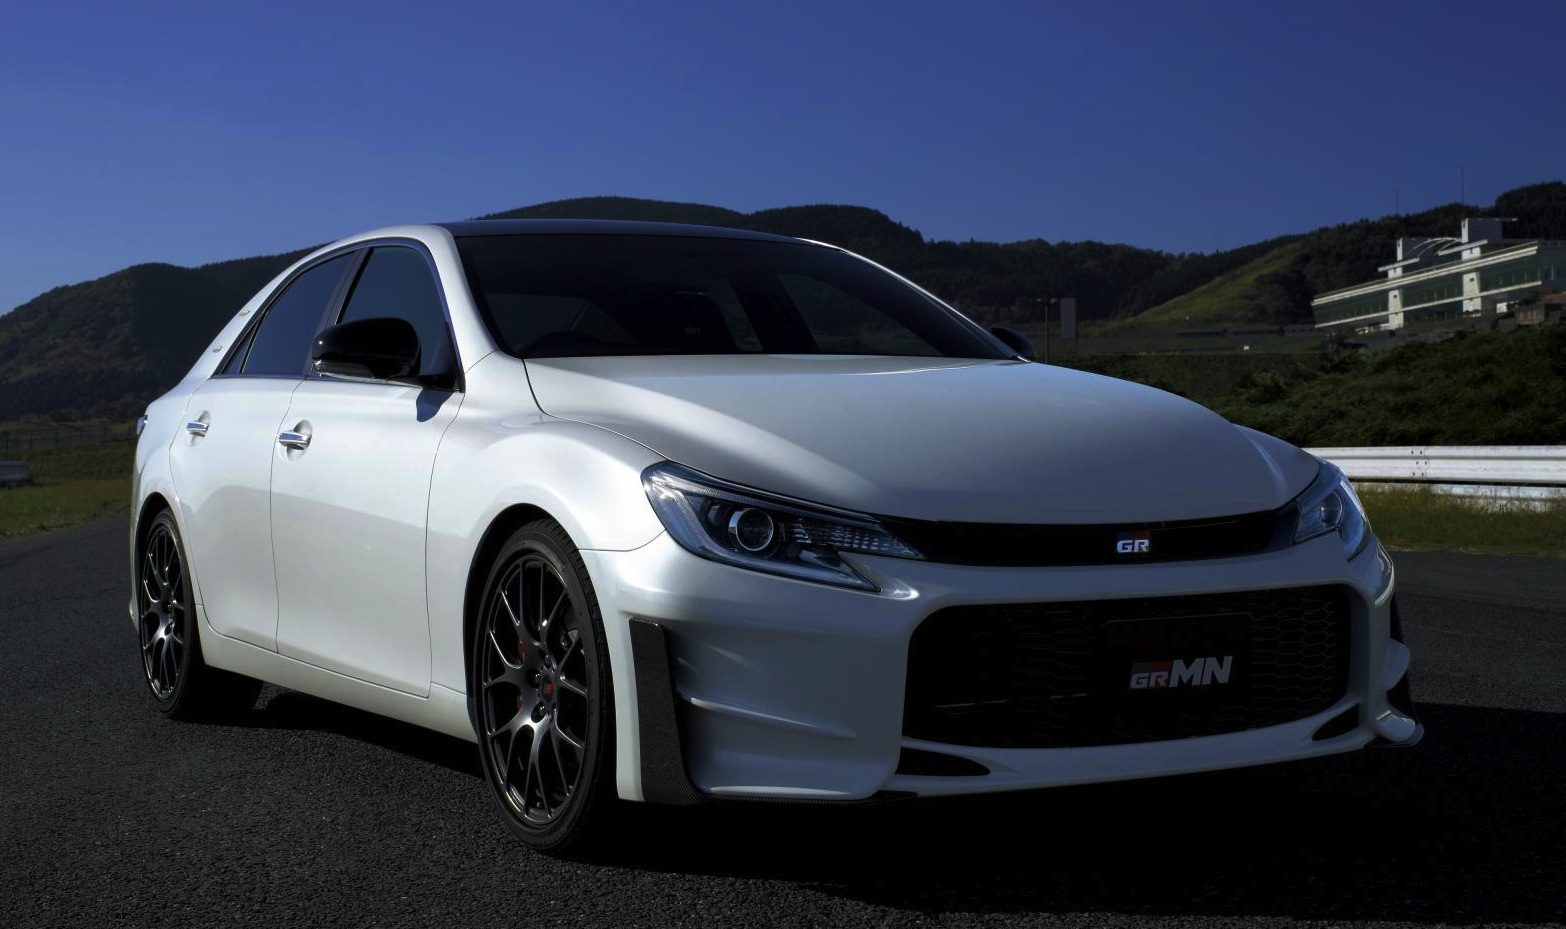 2015 Toyota Mark X Grmn Revealed  Jdm Performance Sedan